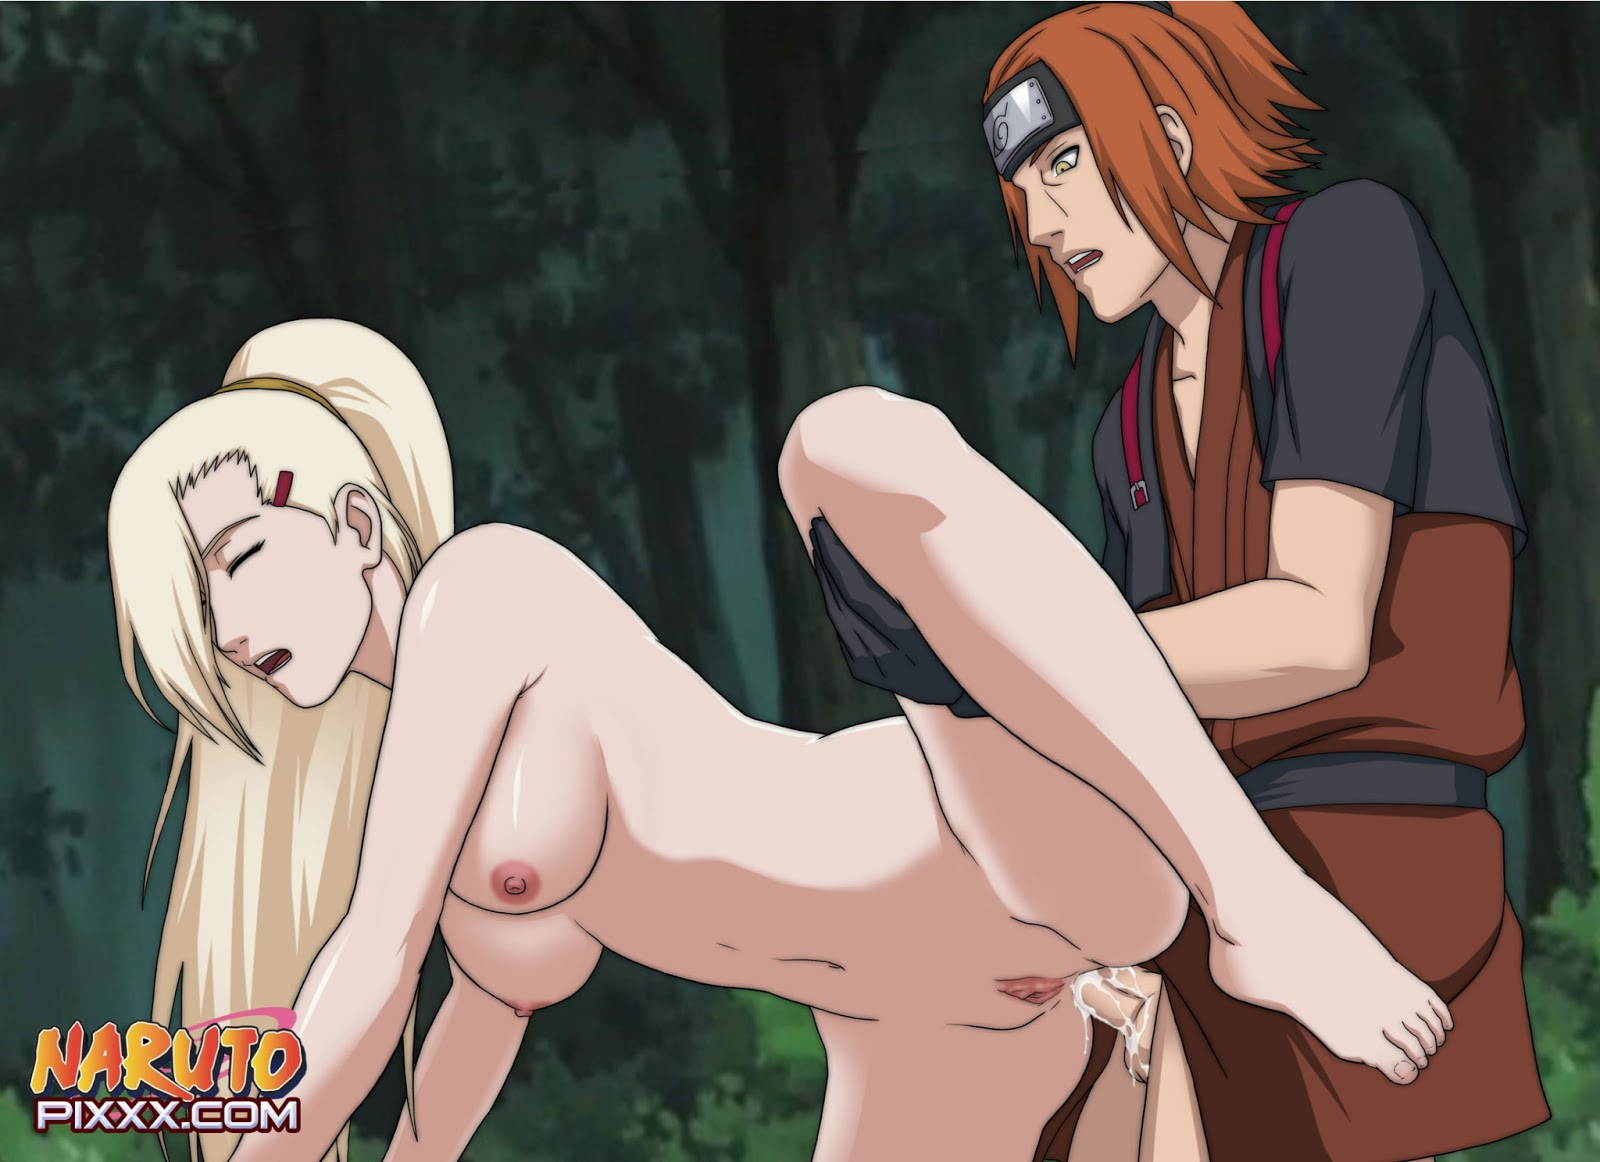 That interfere, Naruto and sakura sex interesting idea